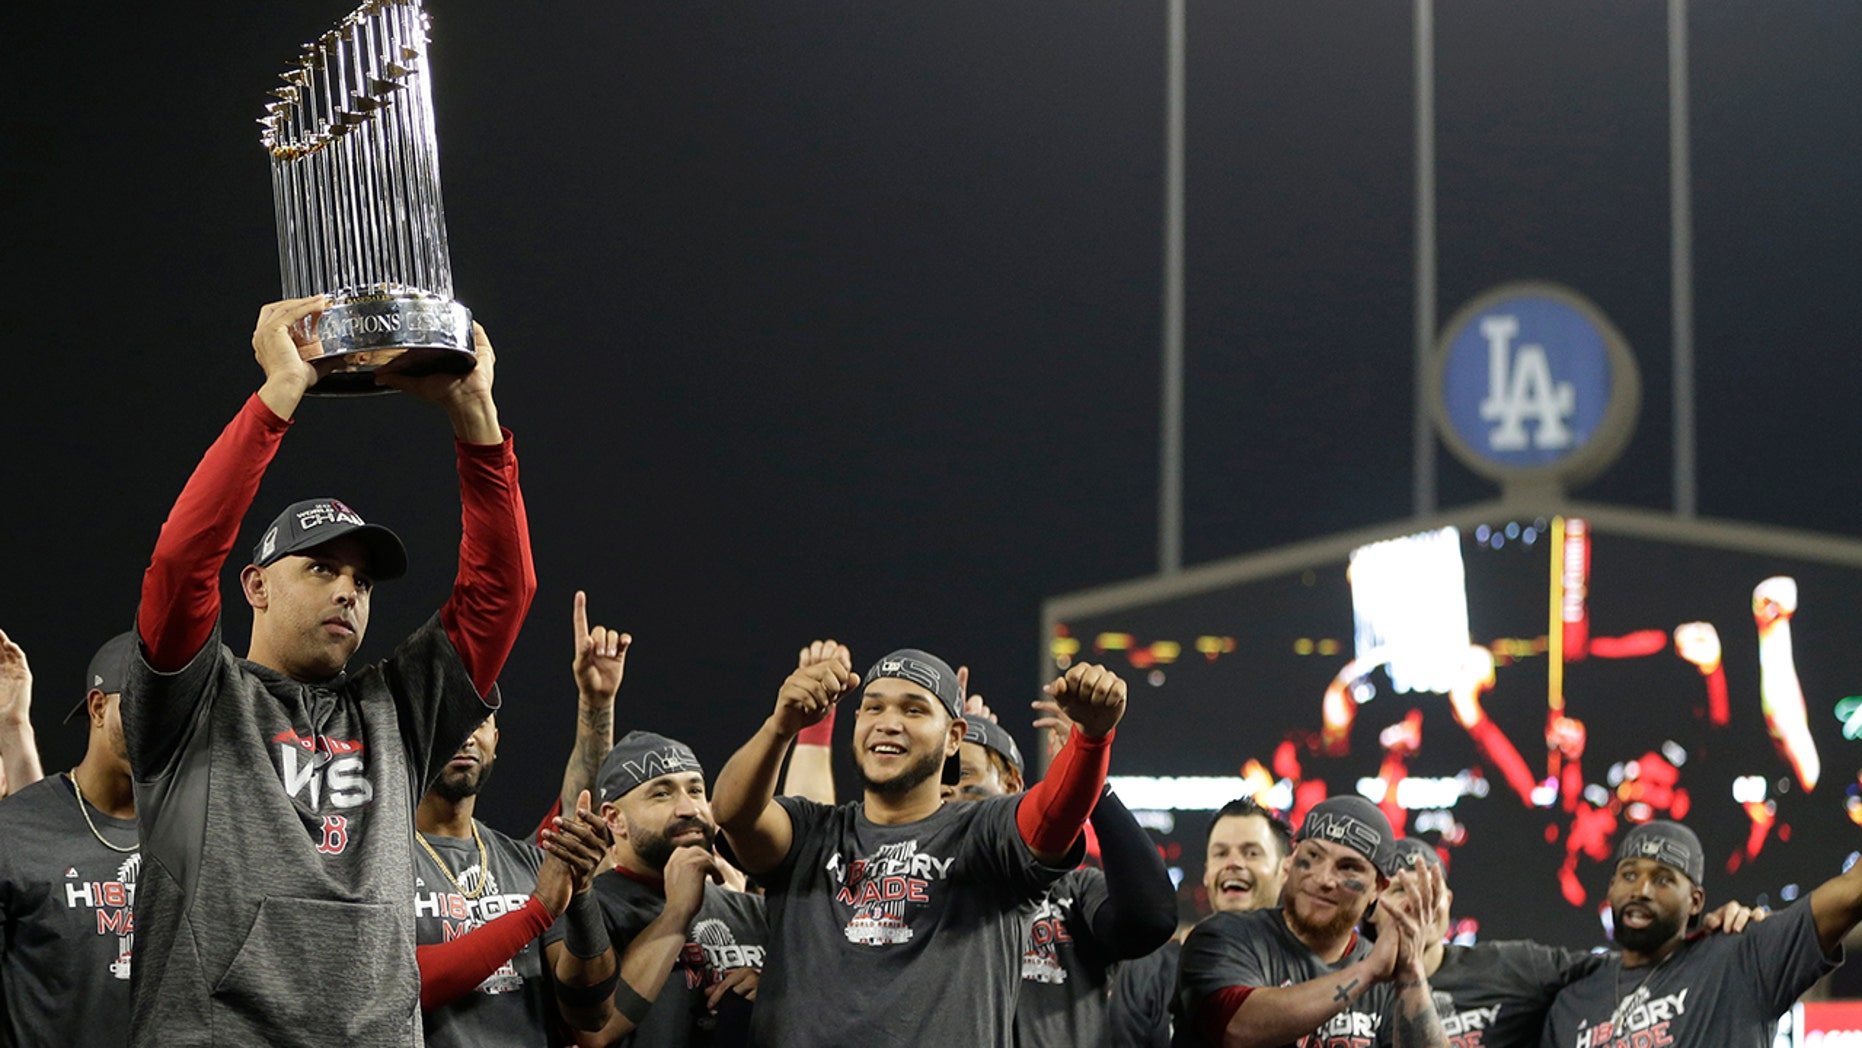 Boston Red Sox manager Alex Cora holds the championship trophy after Game 5 of baseball's World Series against the Los Angeles Dodgers on Sunday, Oct. 28, 2018, in Los Angeles..